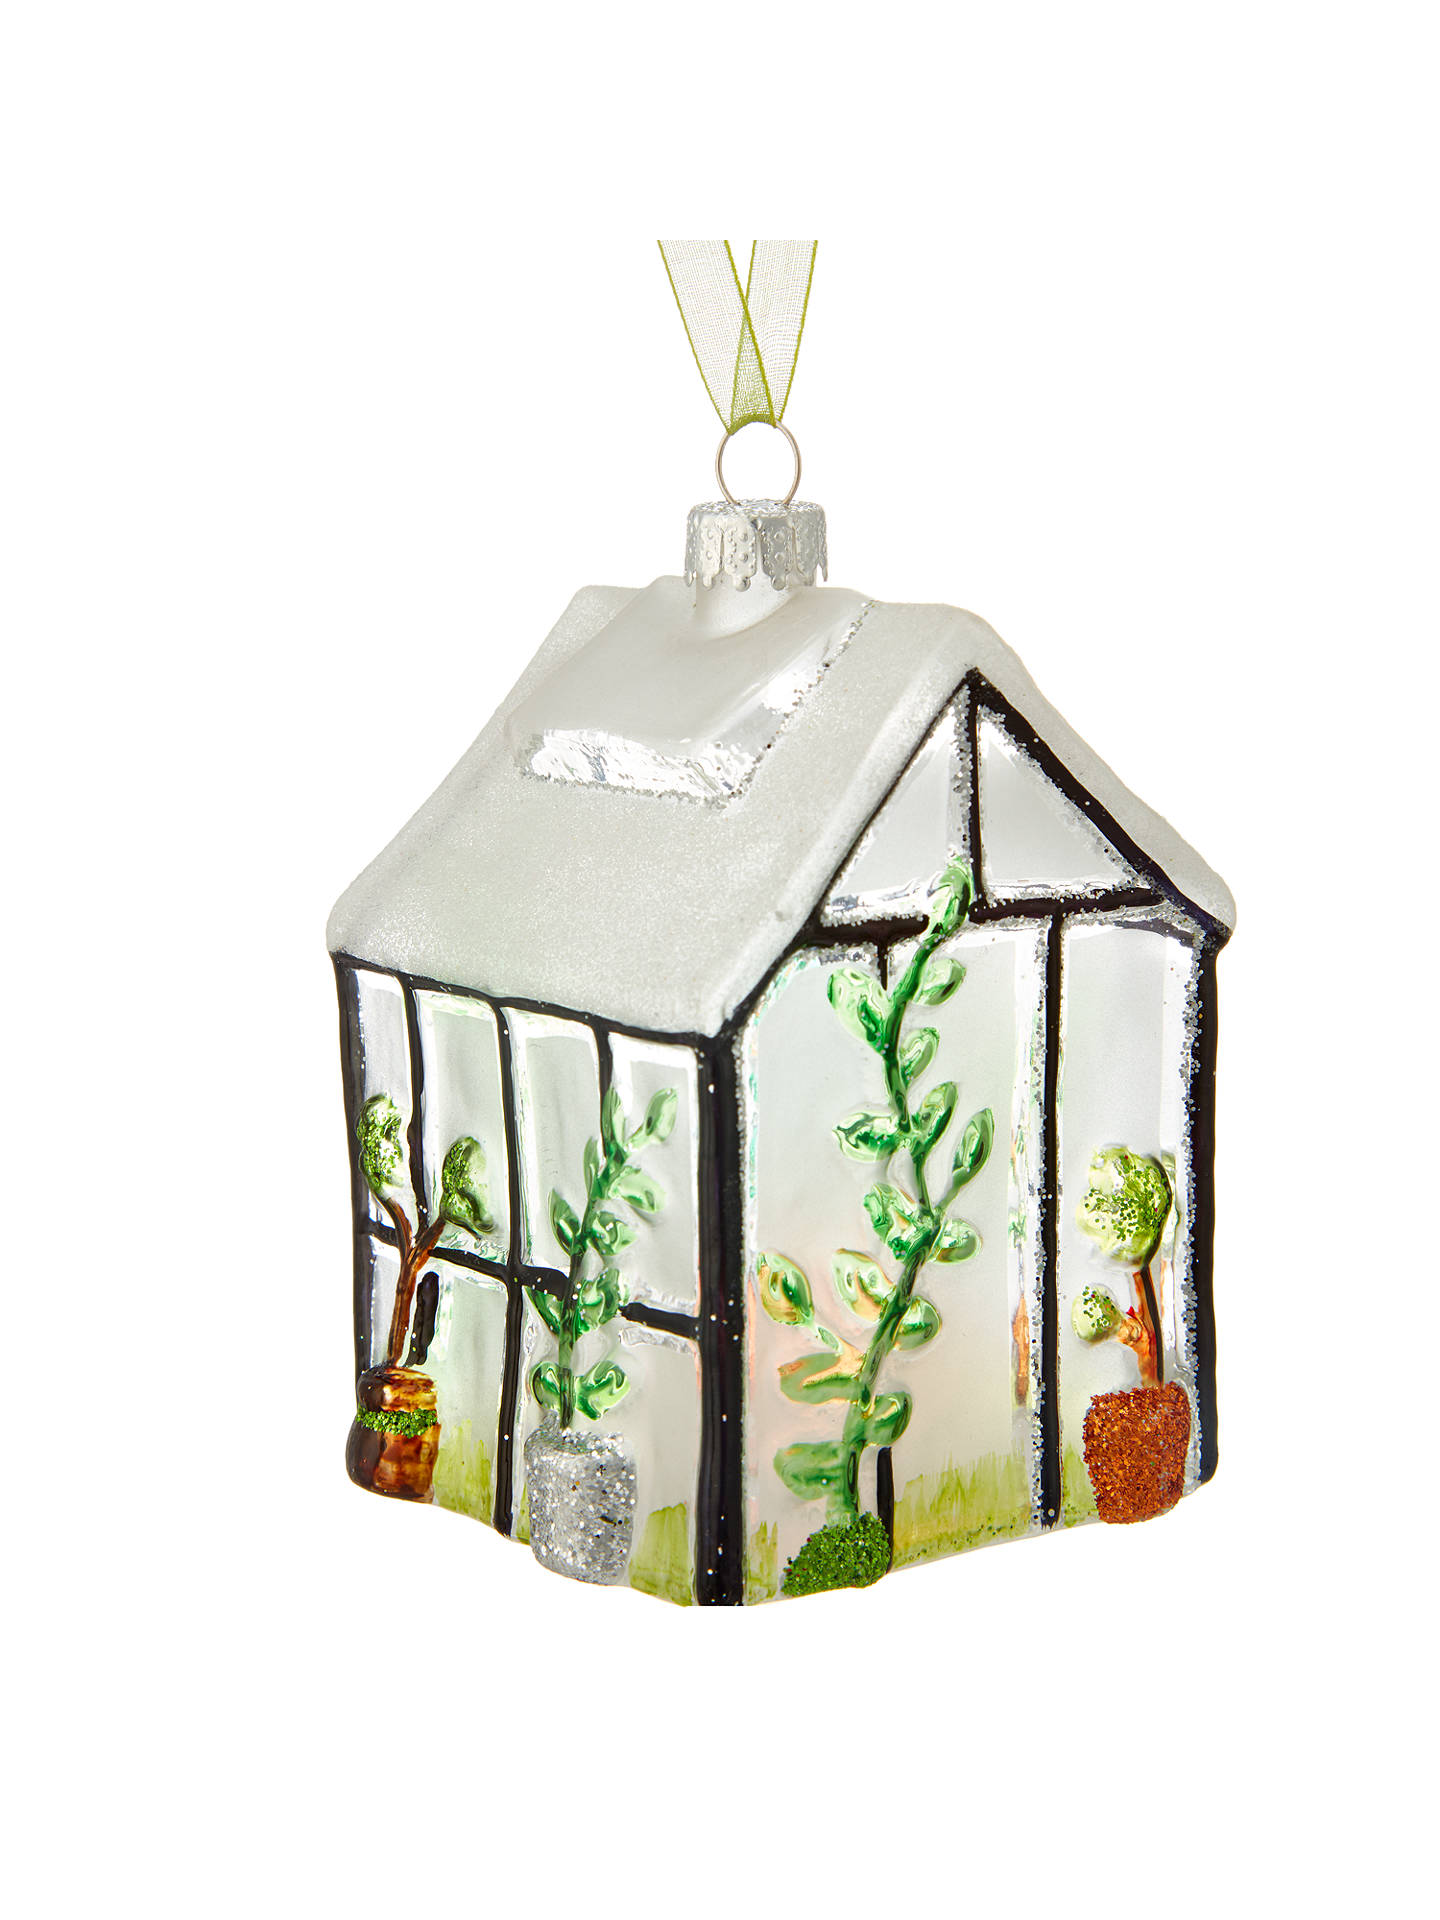 John Lewis Christmas Tree Themes.John Lewis Into The Woods Greenhouse Tree Decoration At John